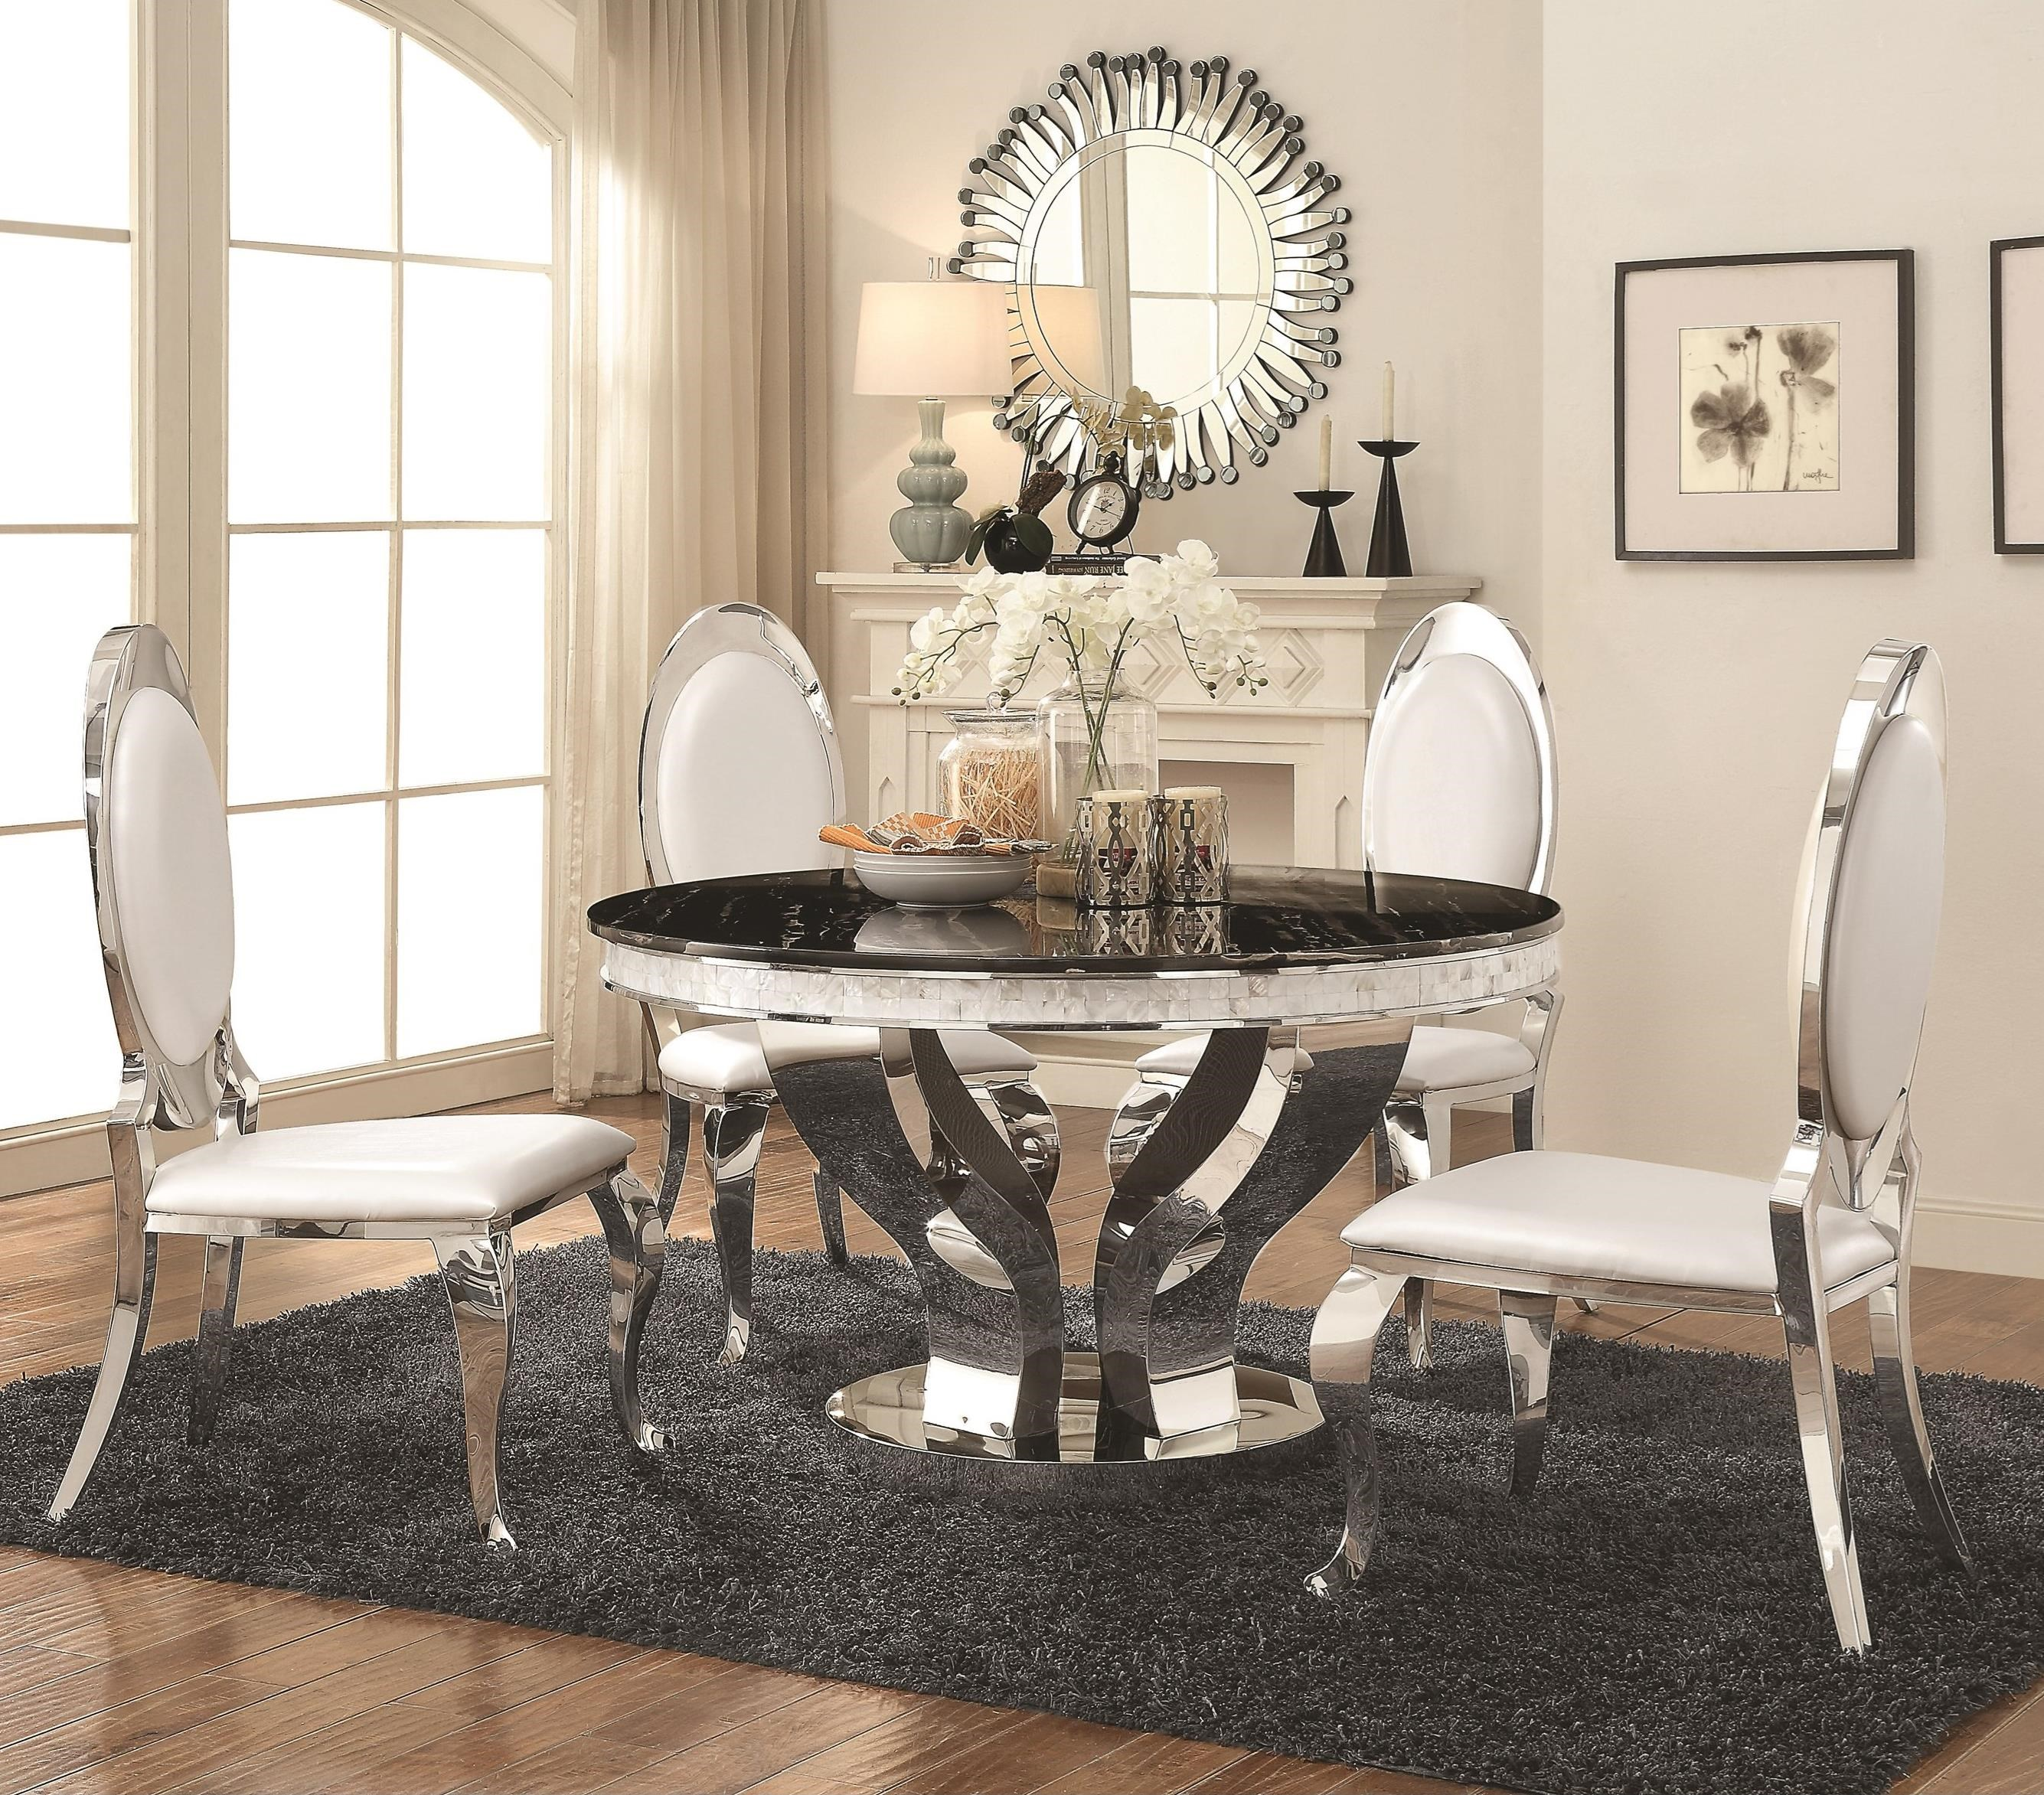 Anchorage 5 Piece Dining Table Set by Coaster at Rife's Home Furniture